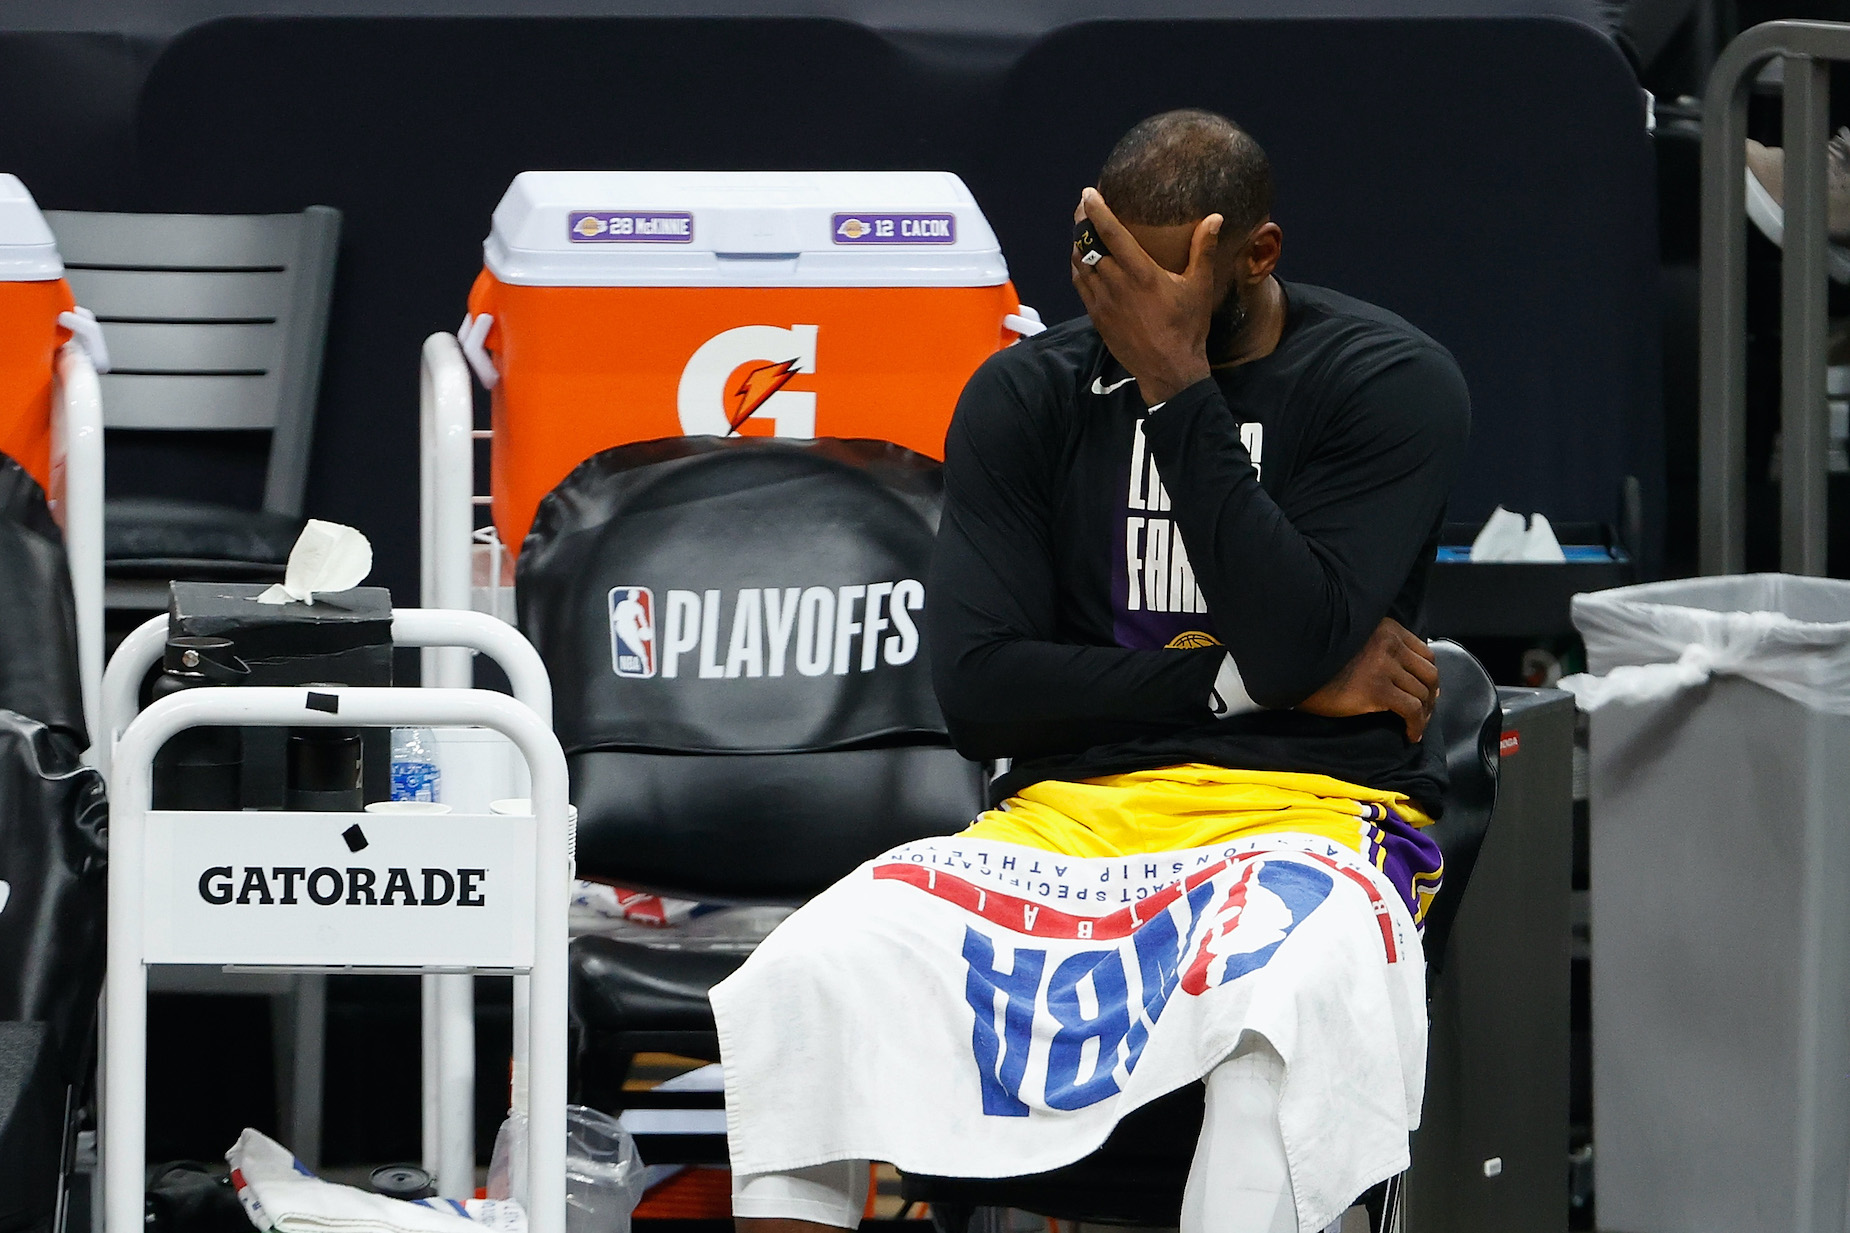 LeBron James and his LA Lakers are facing a first-round elimination from the playoffs.